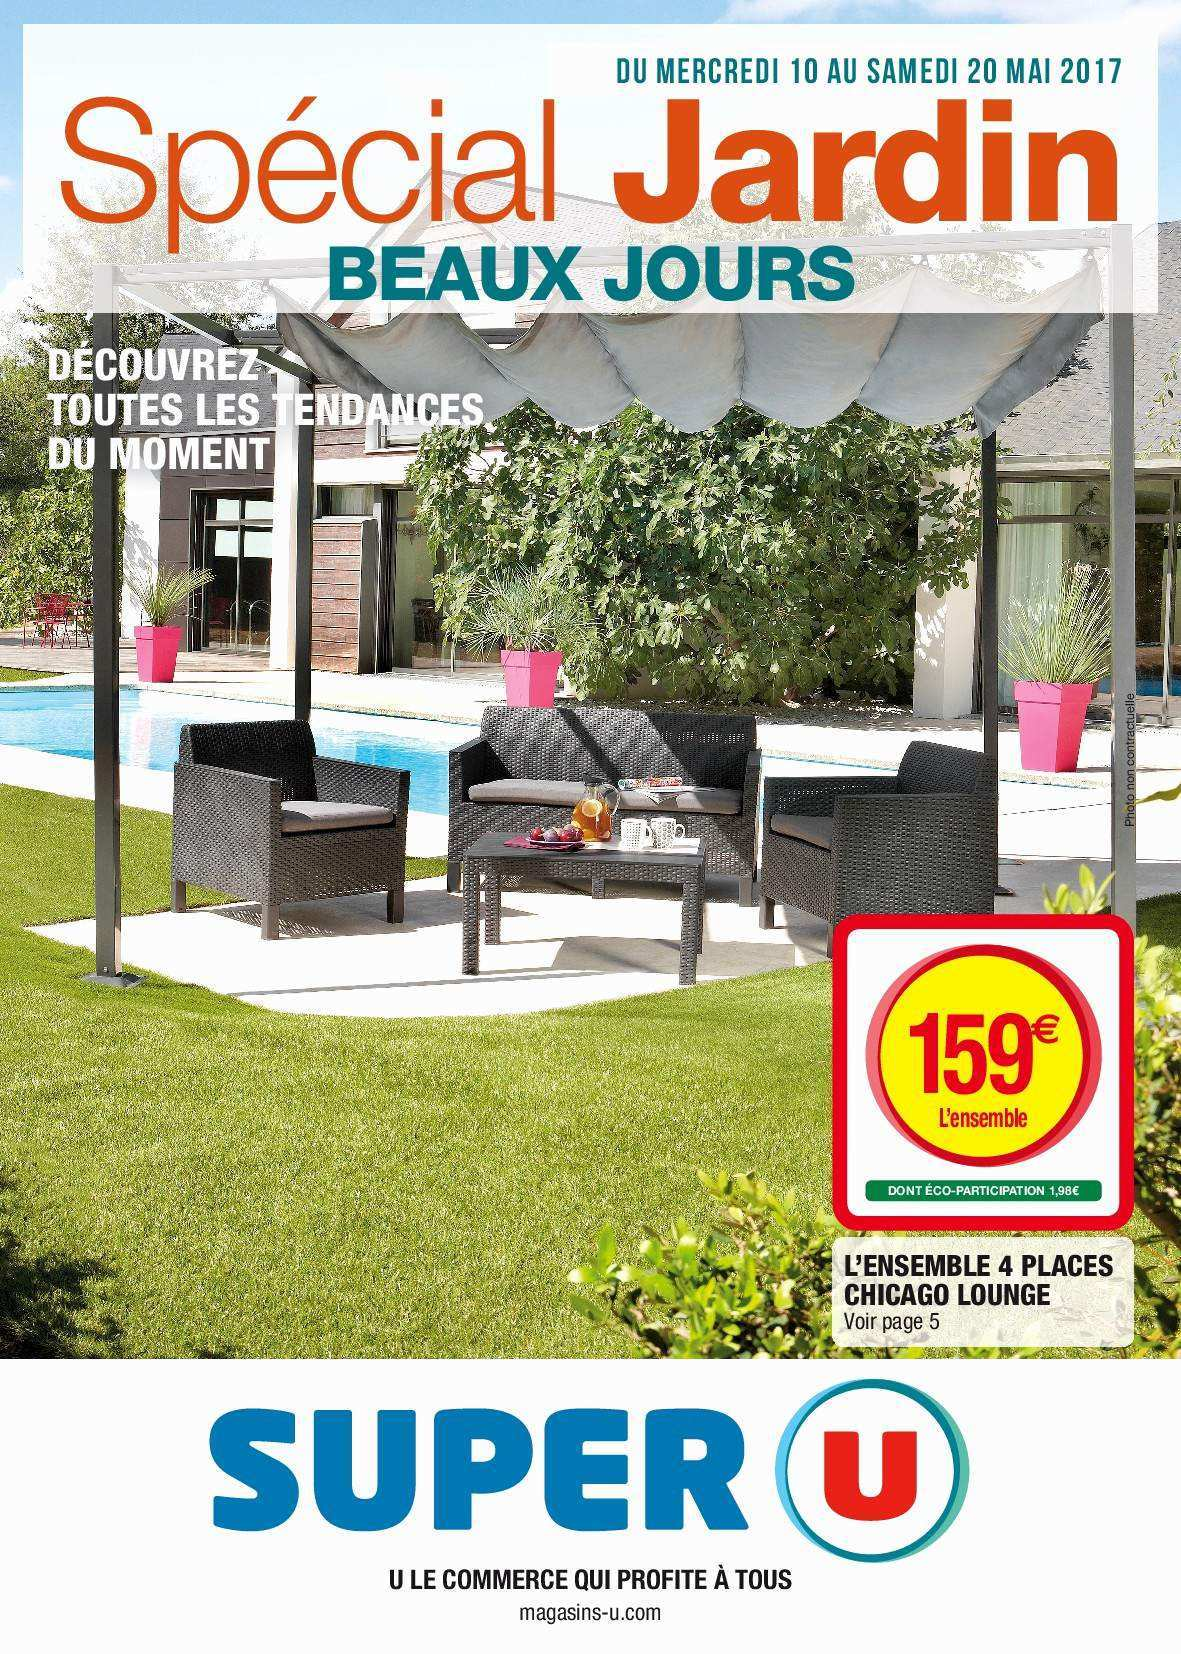 Salon Pictures House Jardin Beautiful Pvc De Super U shtrQdC